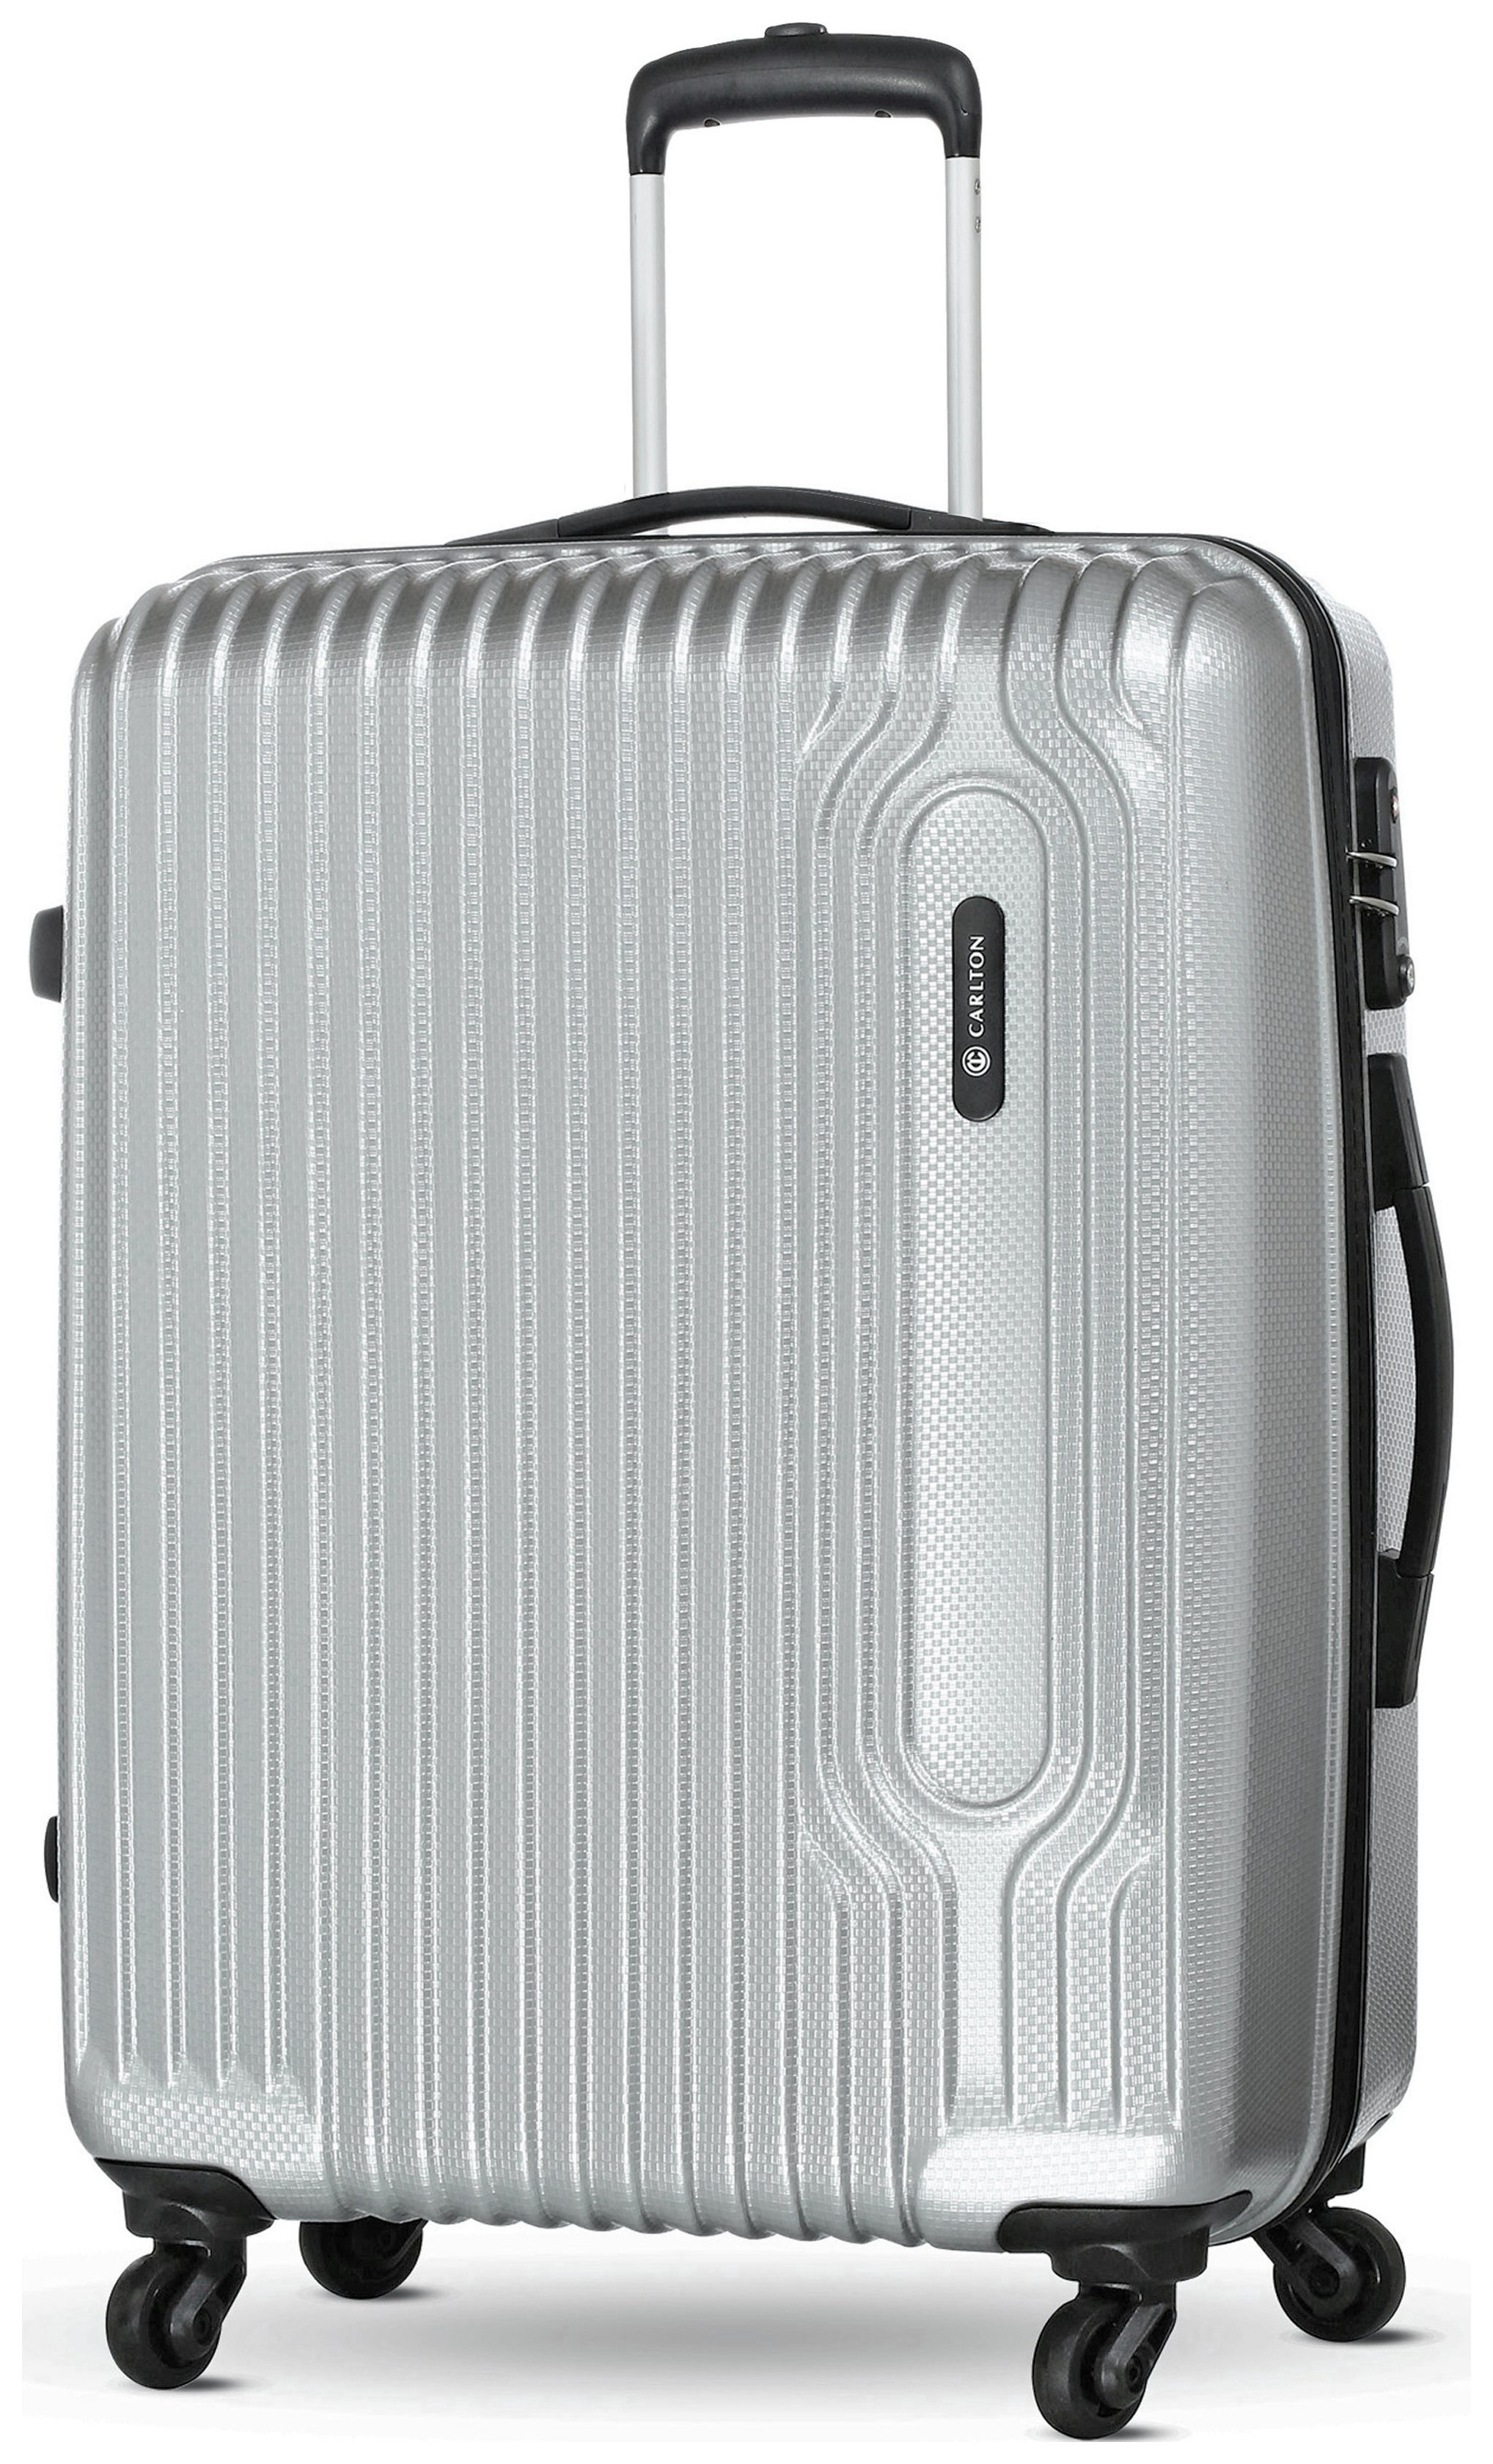 Image of Carlton - Tube Small 4 Wheel Hard Suitcase - Silver